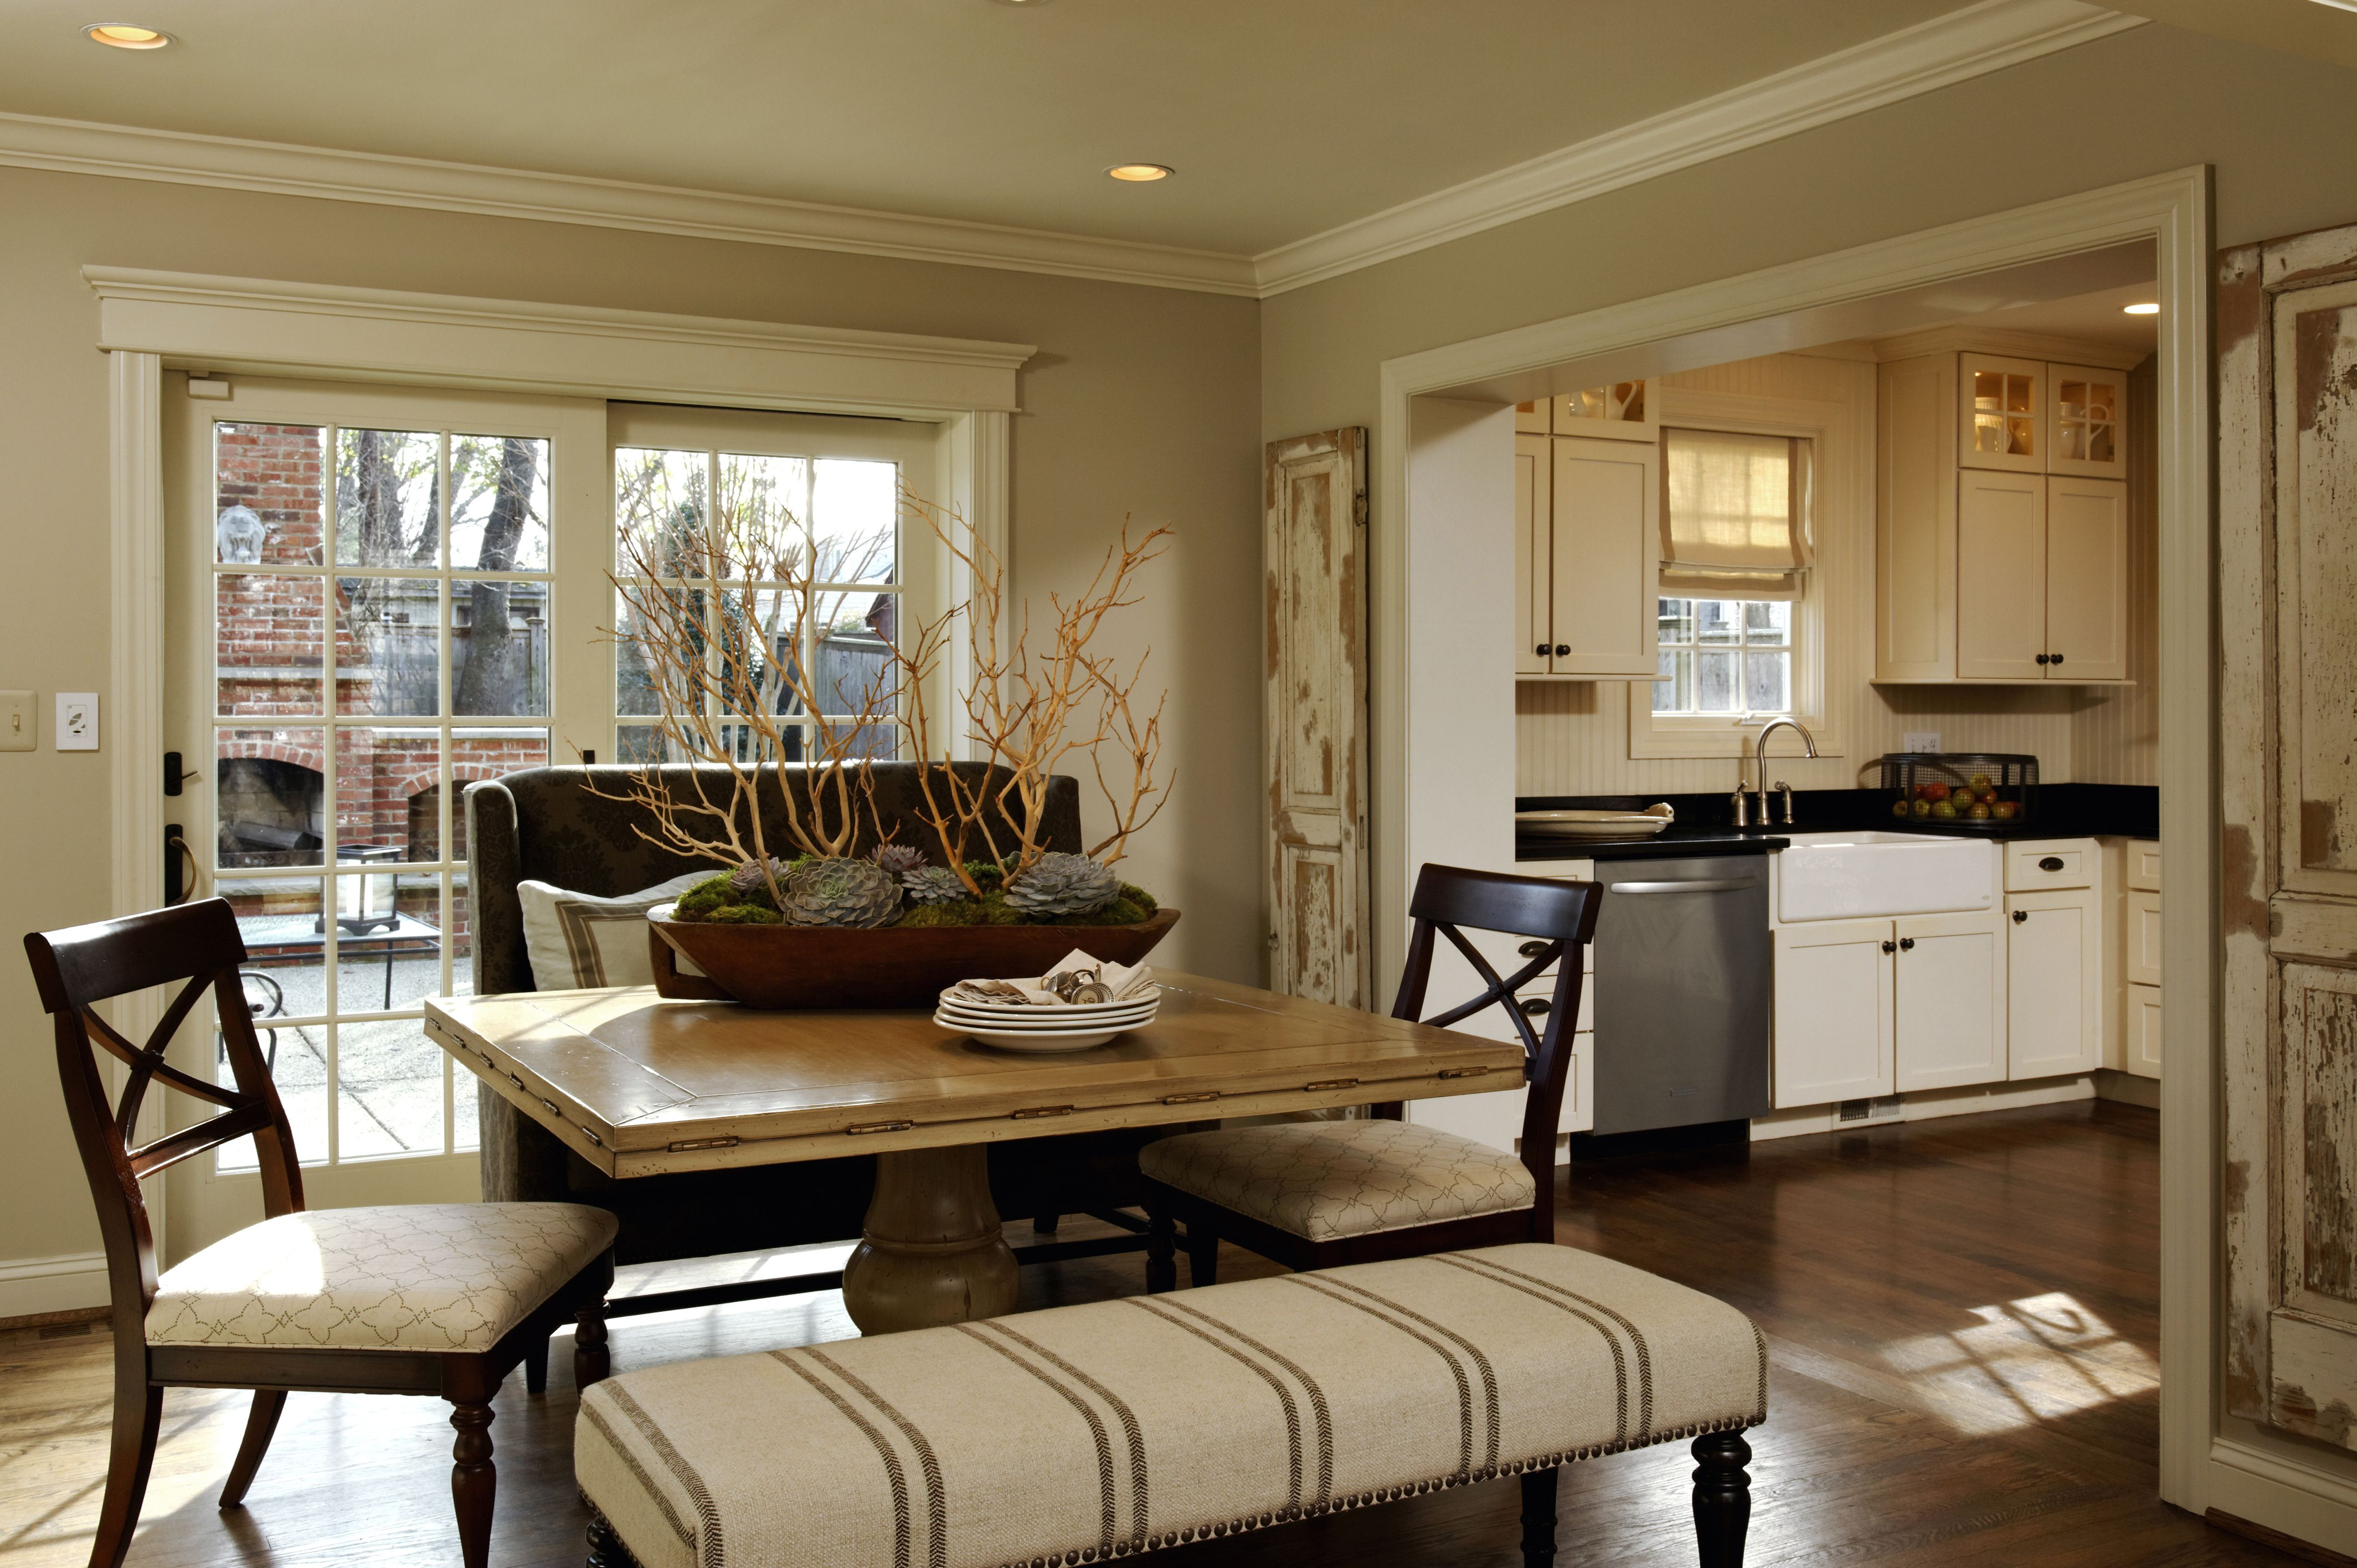 Have Old Cape Cod And No Formal Dining Room Dining Room Design Interior Design Interior